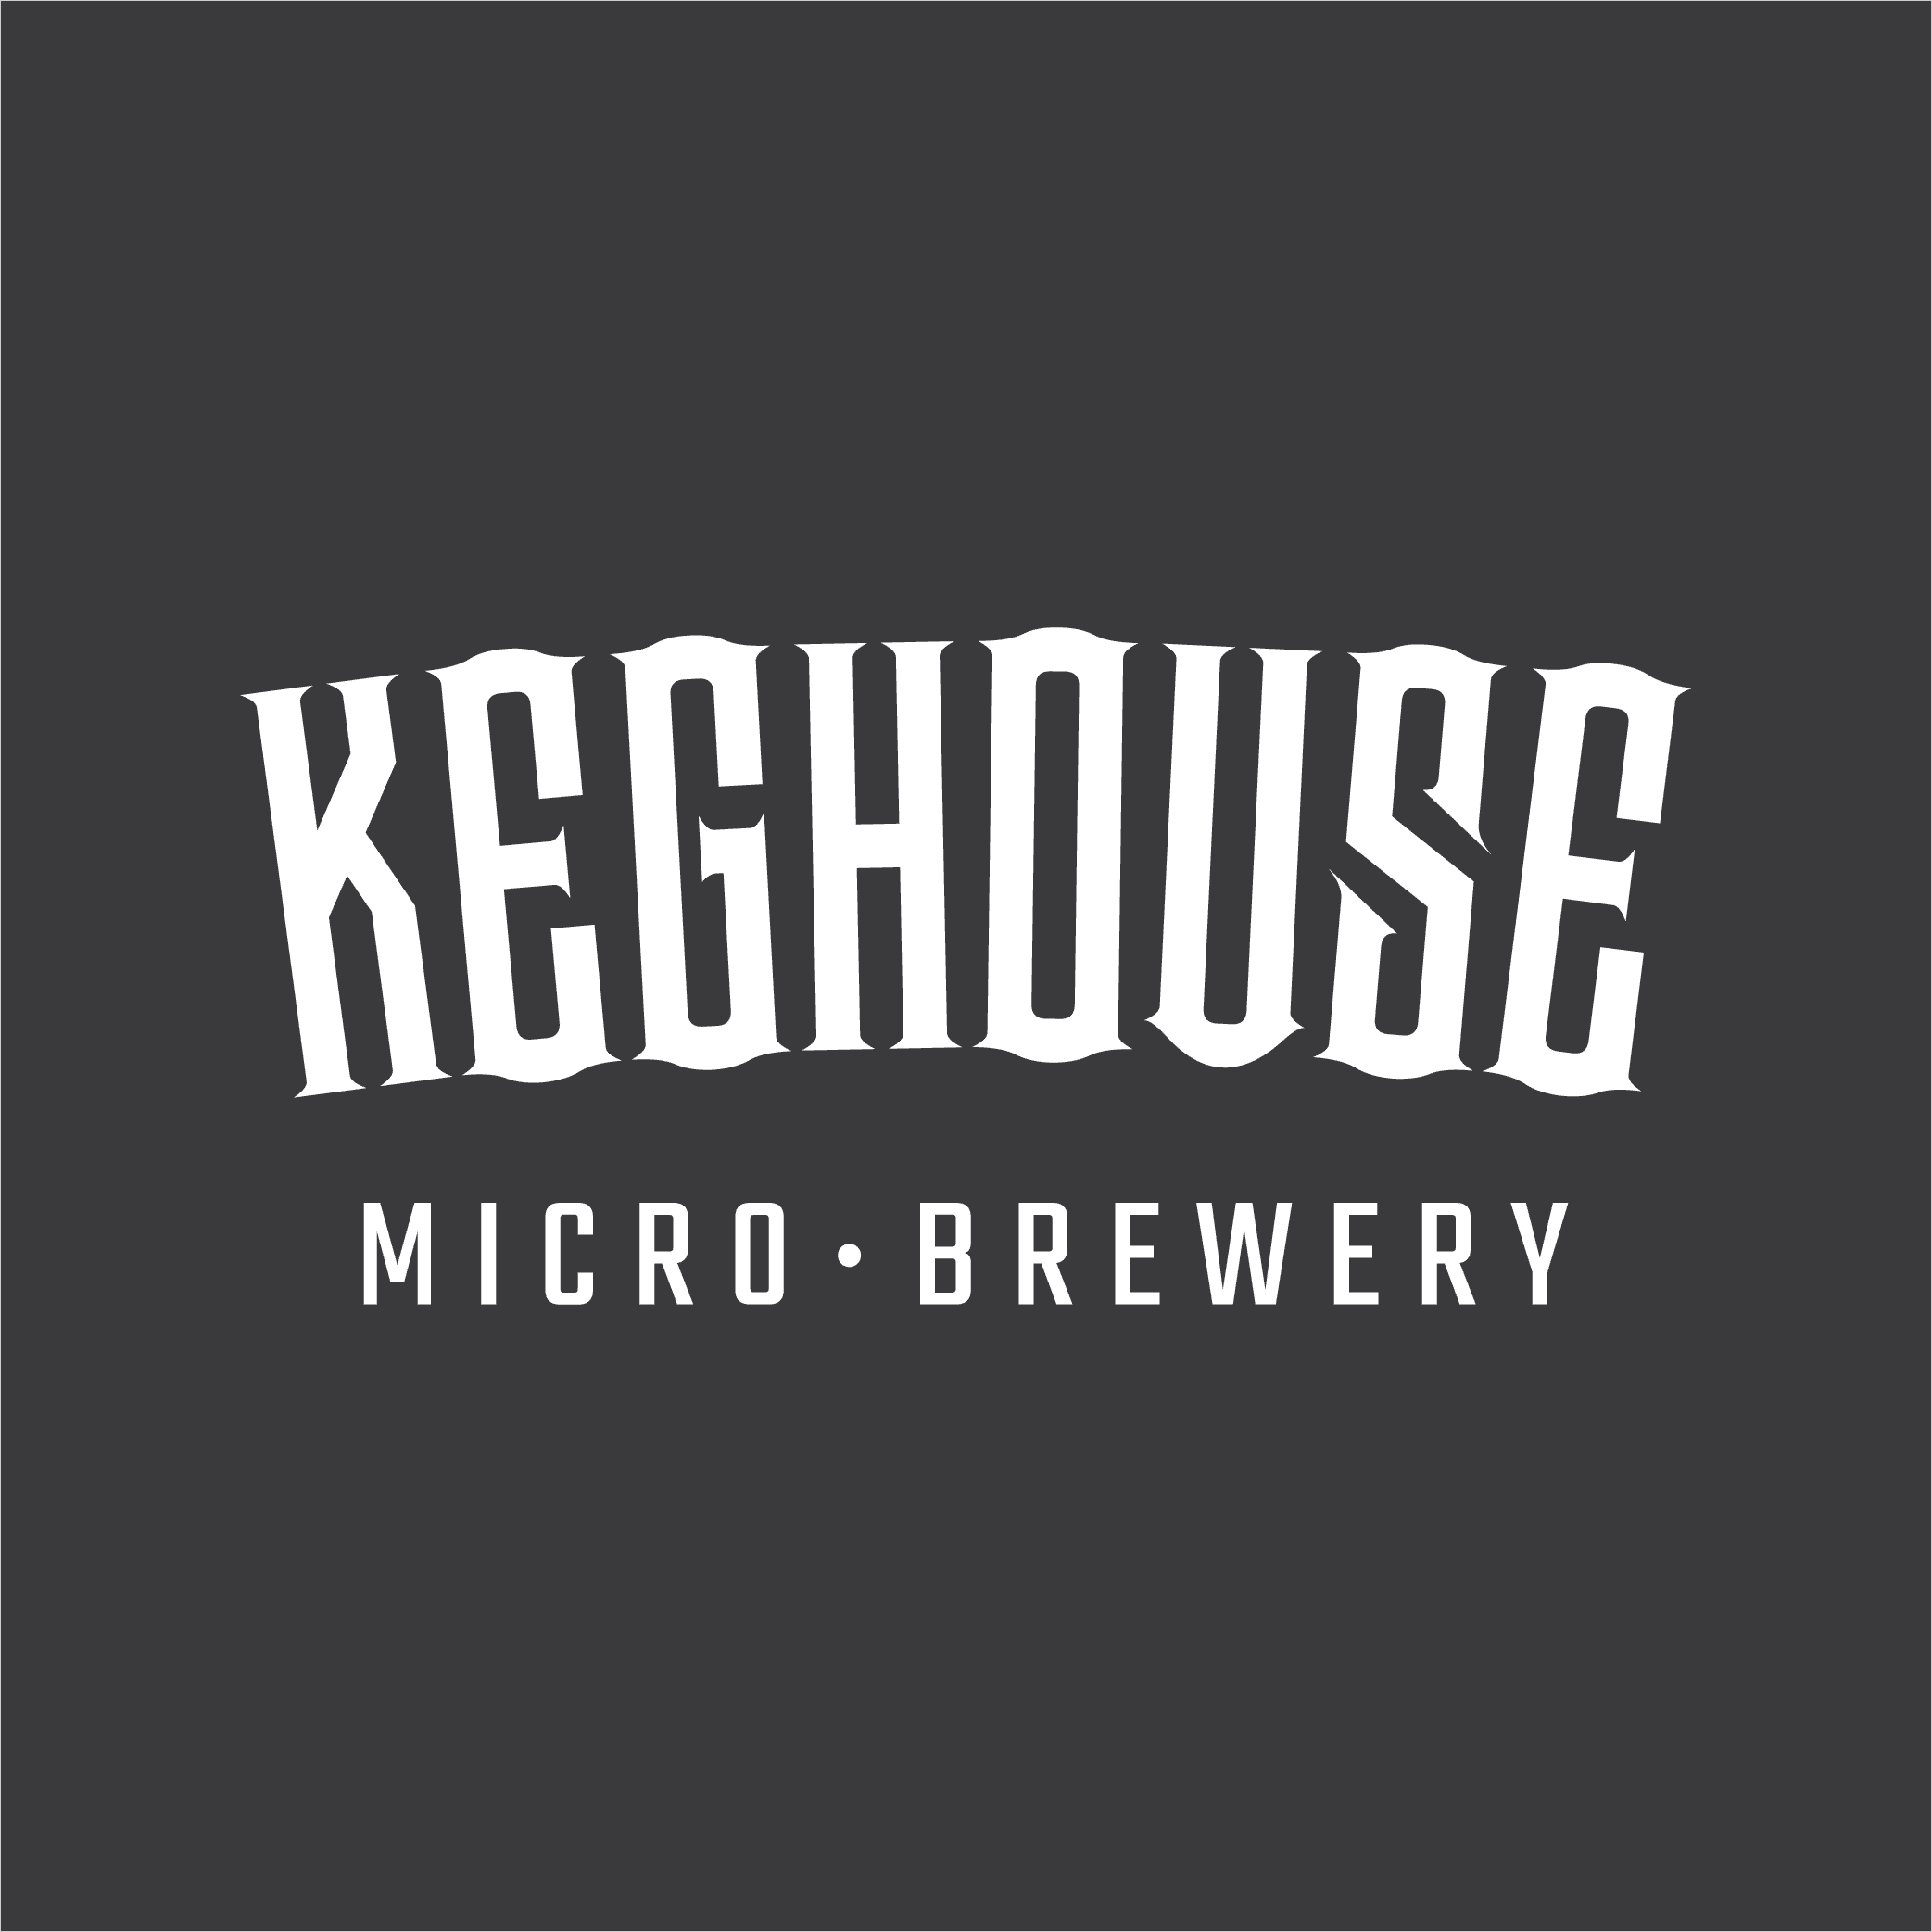 Keghouse Micro Brewery